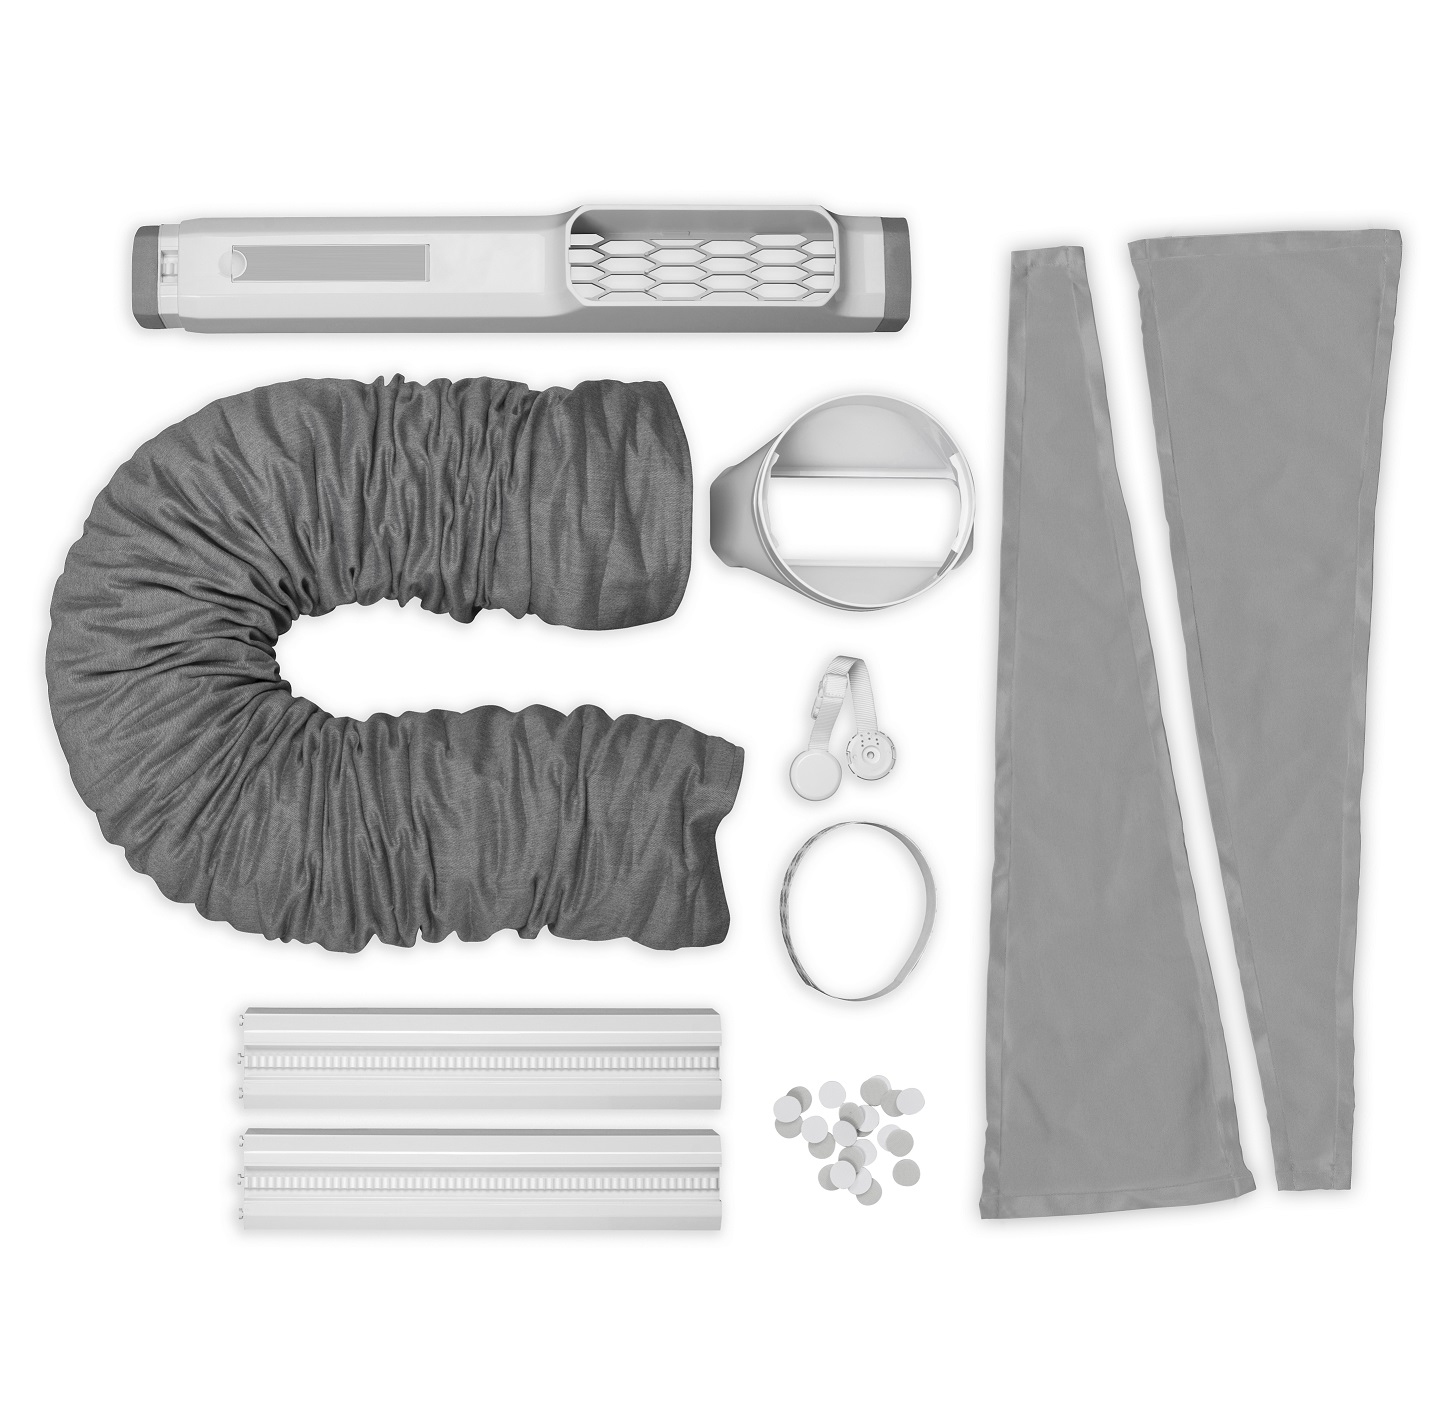 Electrolux - Window Kit to Well P7 & Chillflex